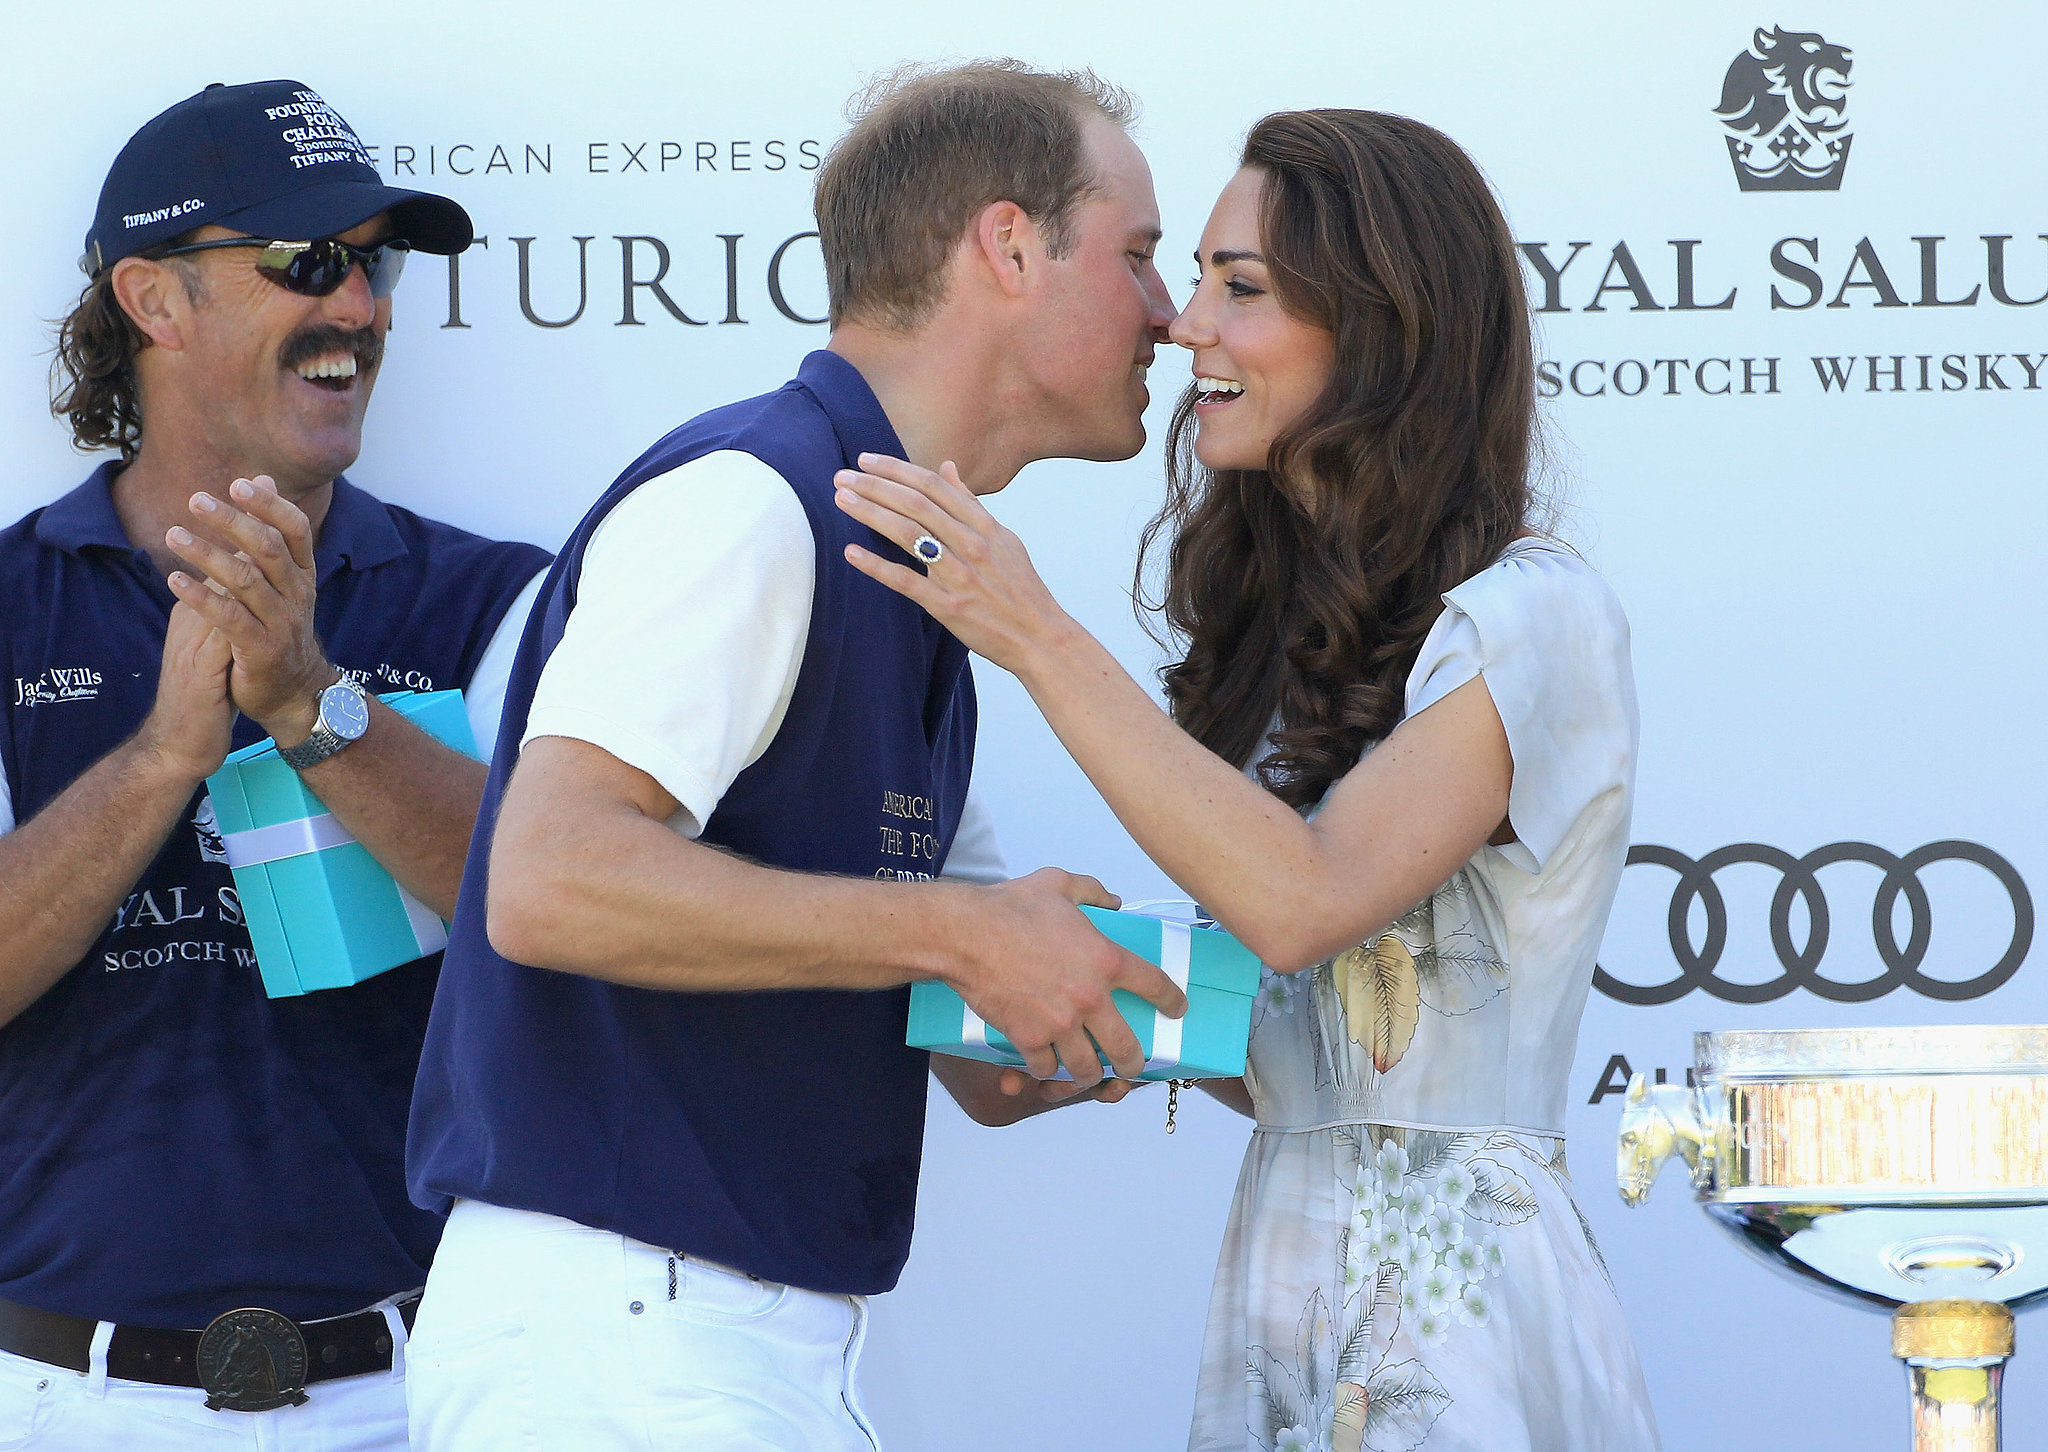 Kate Middleton congratulated Prince William following a July 2011 polo match in California.